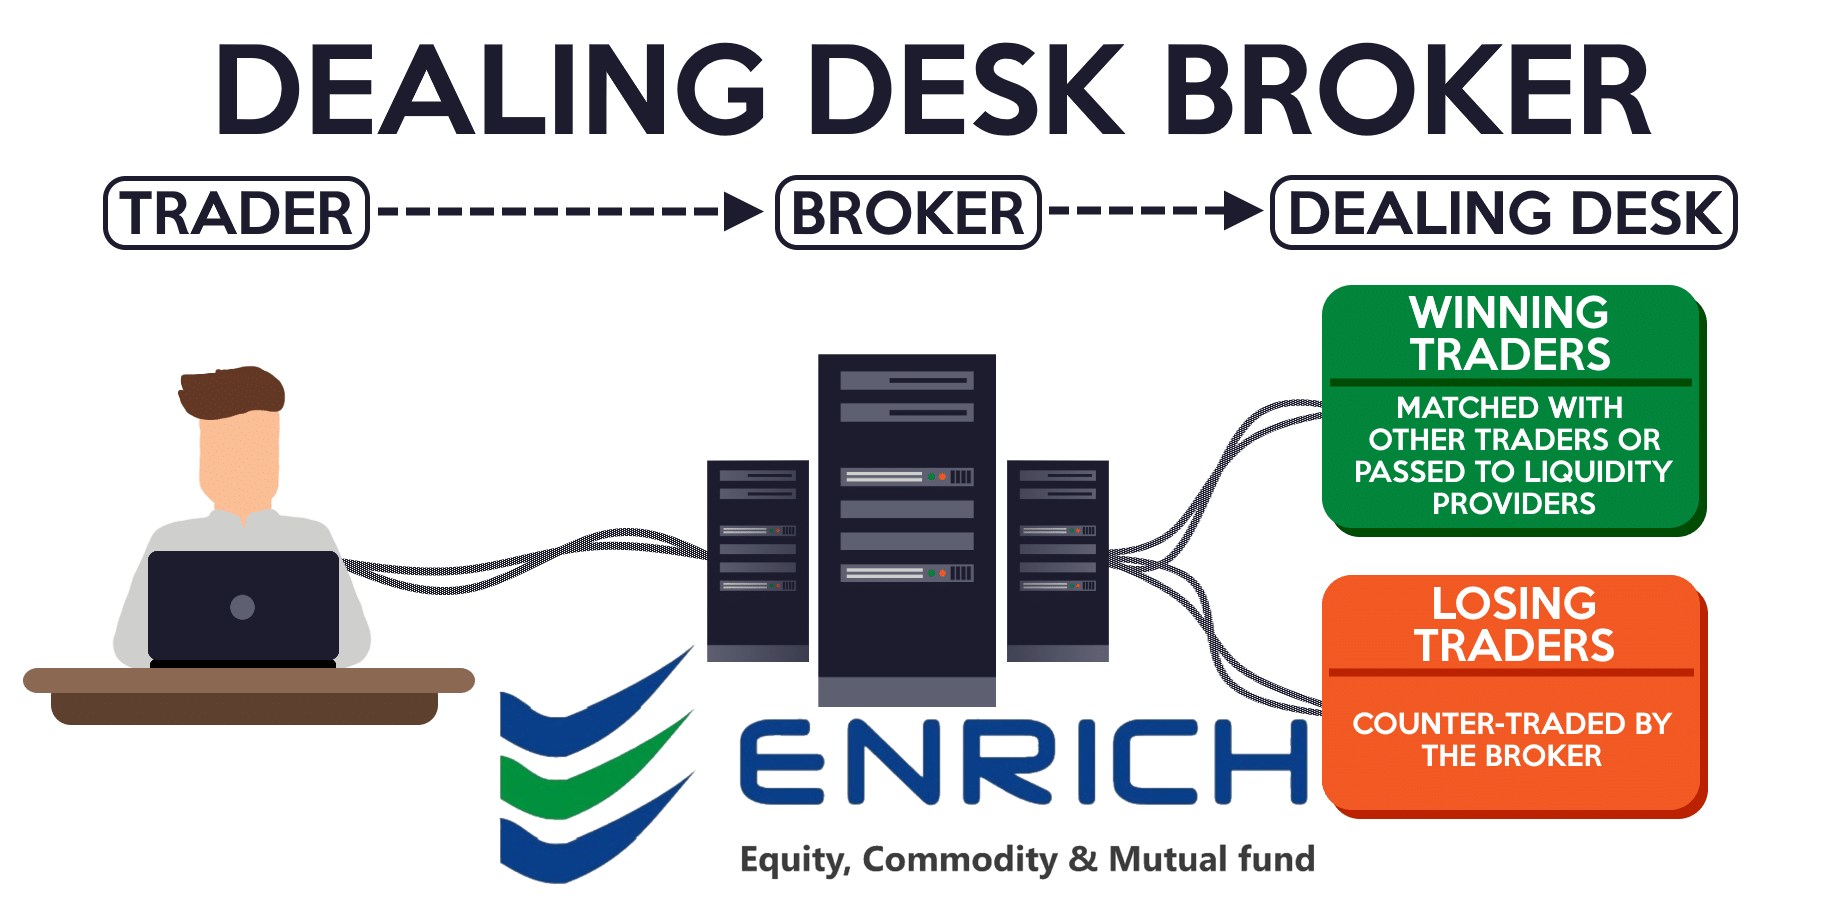 what are the different types of broker? - quora